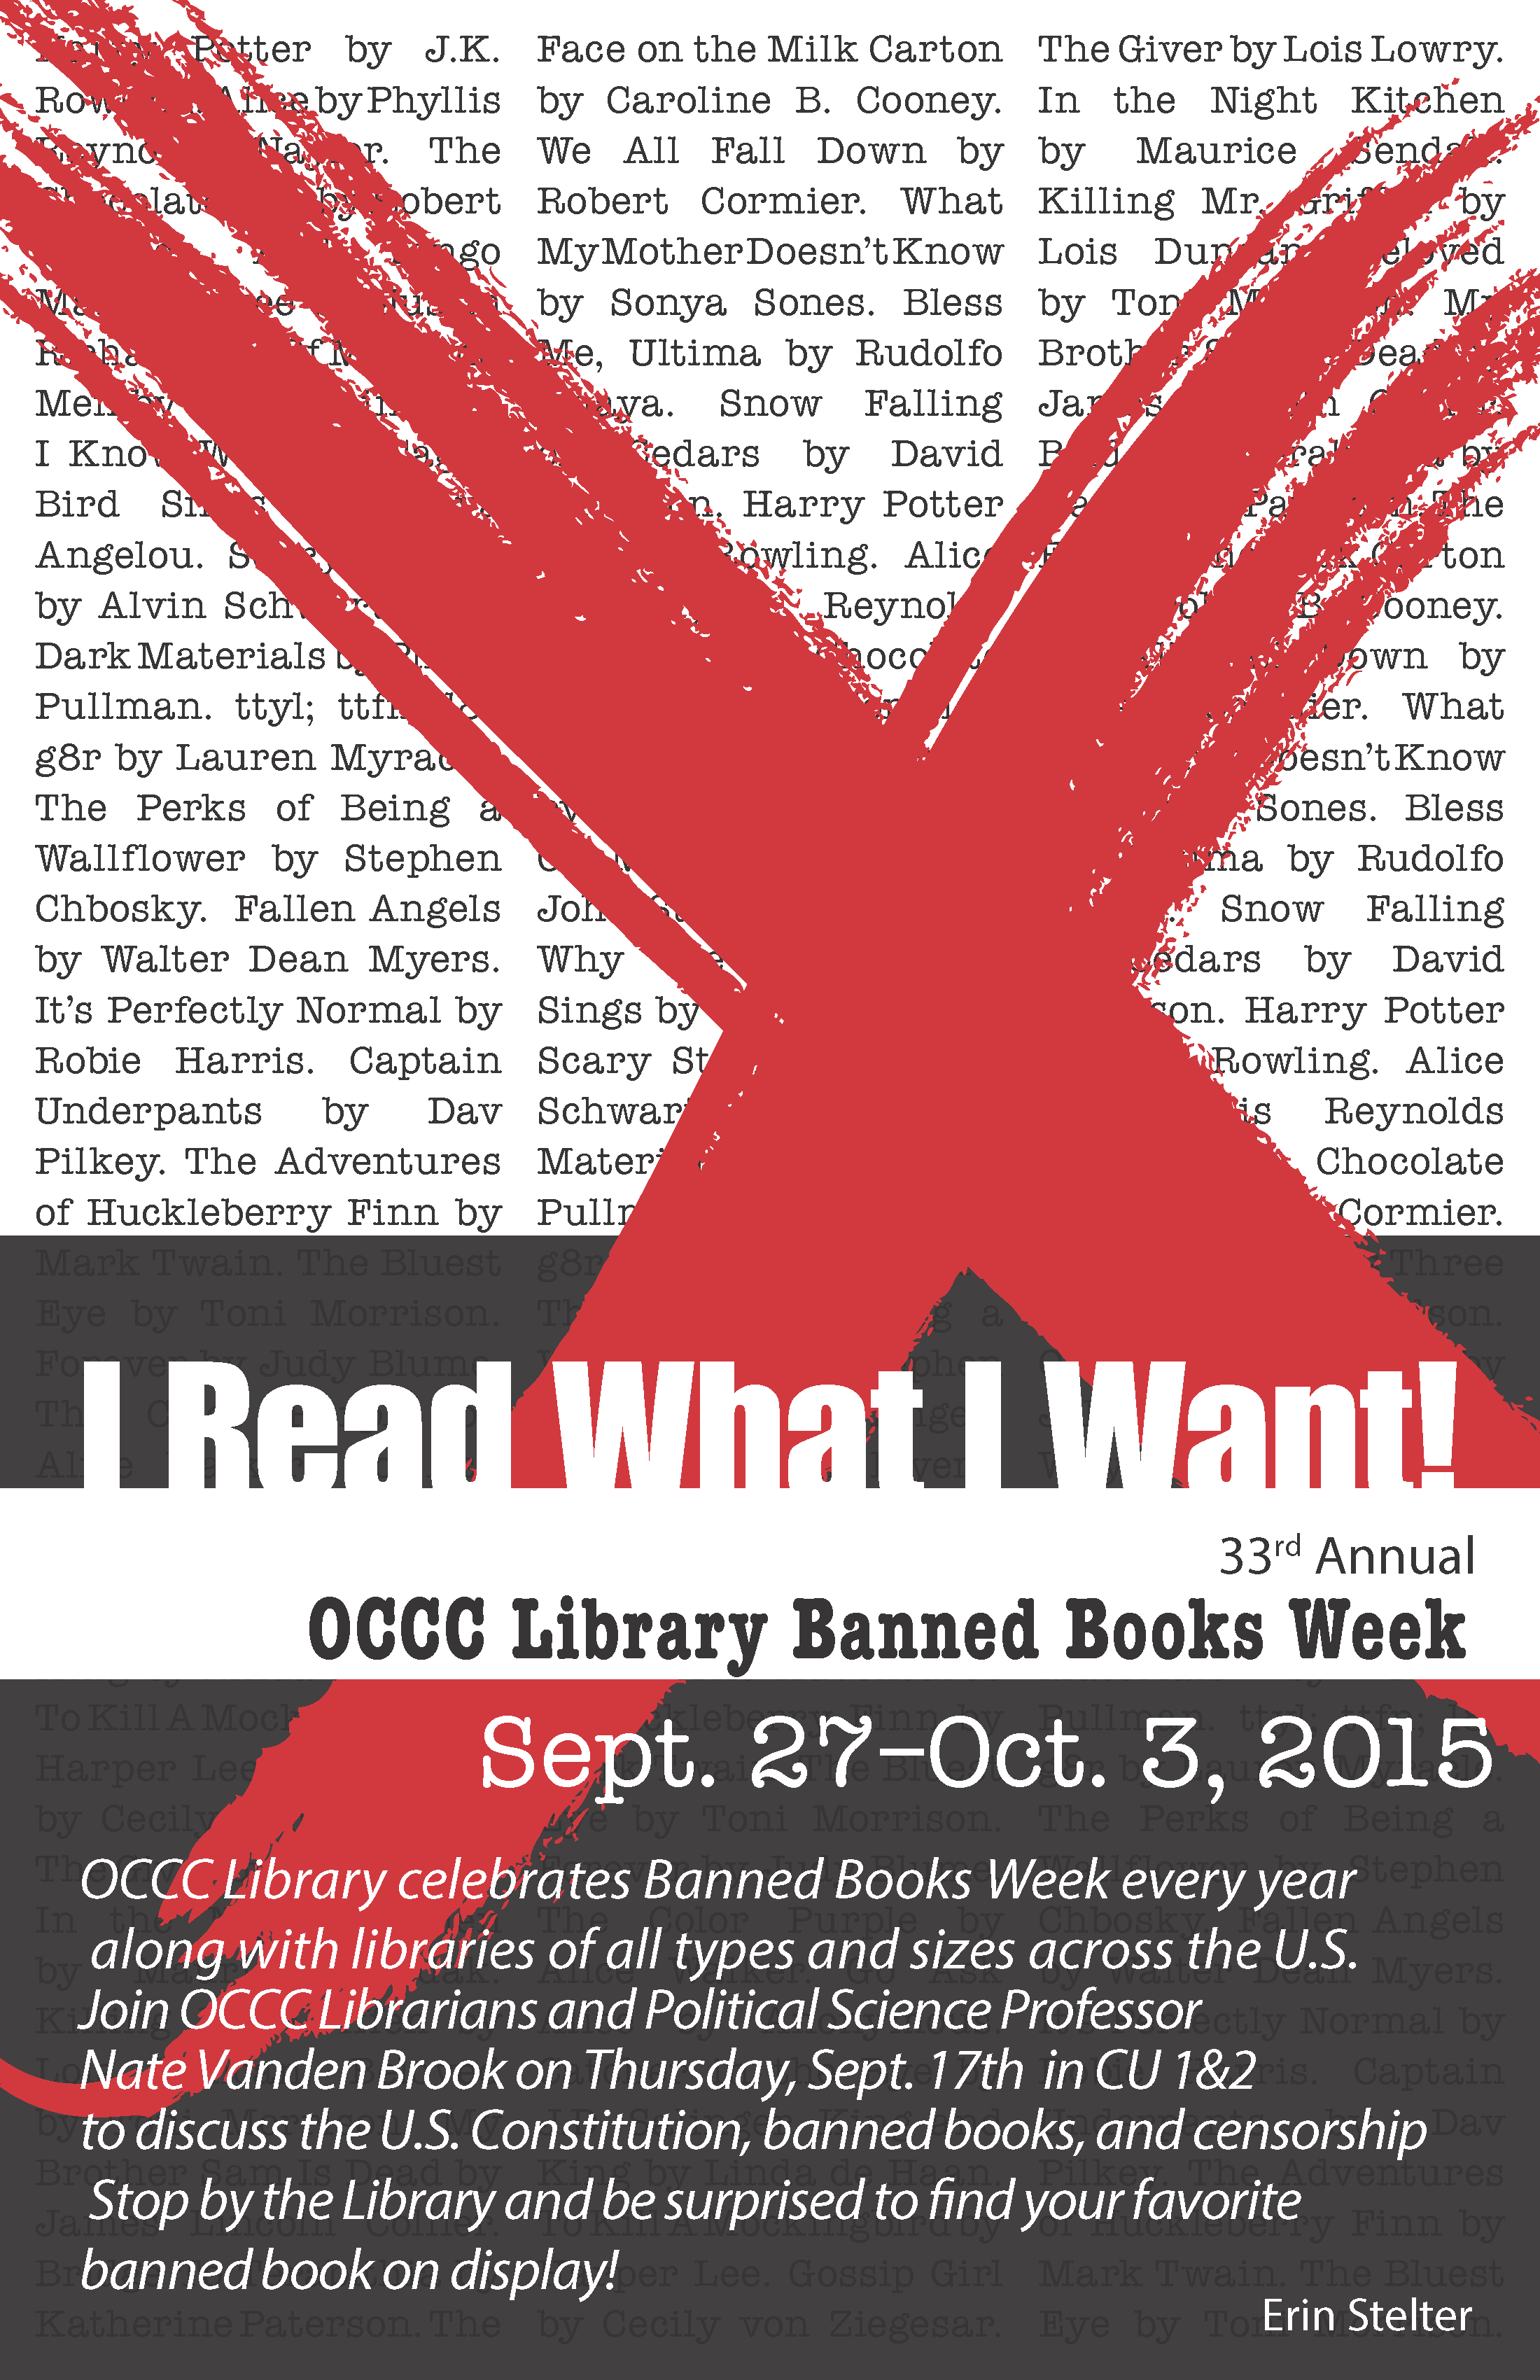 Erin Stelter Banned Book Week 2015